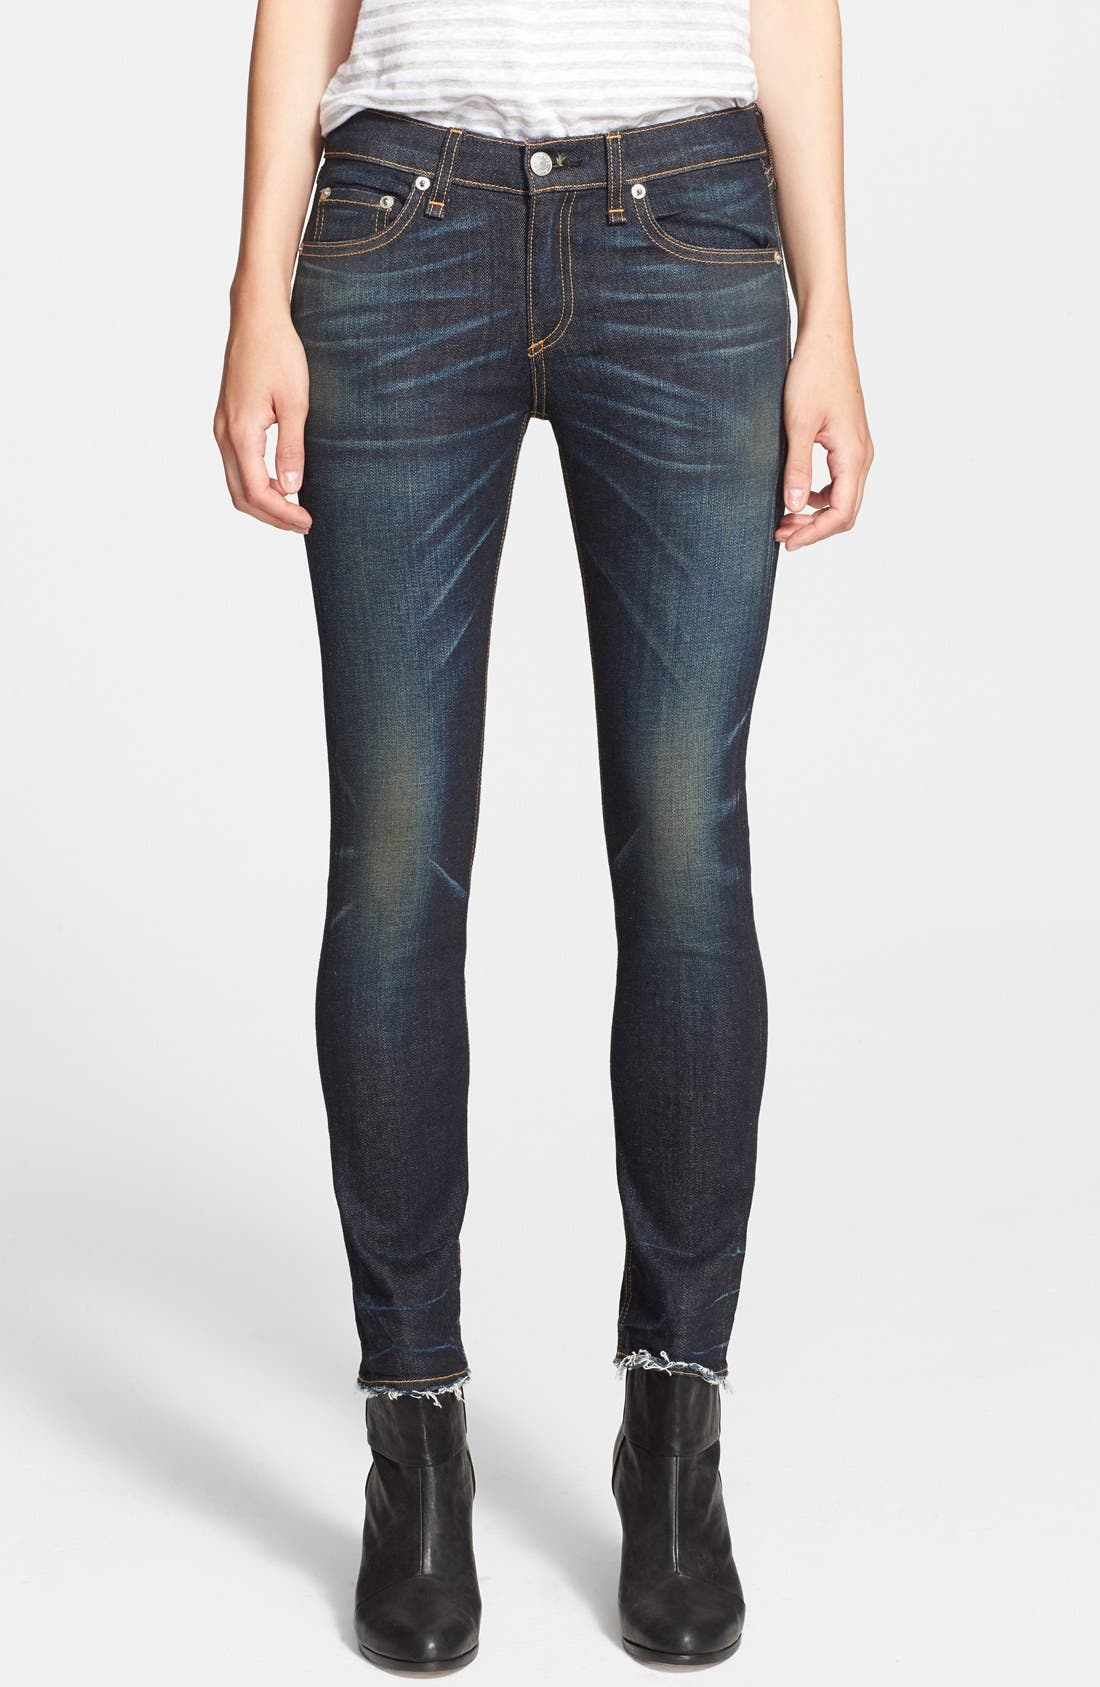 JEAN 'The Crop' Skinny Jeans, Main, color, 401